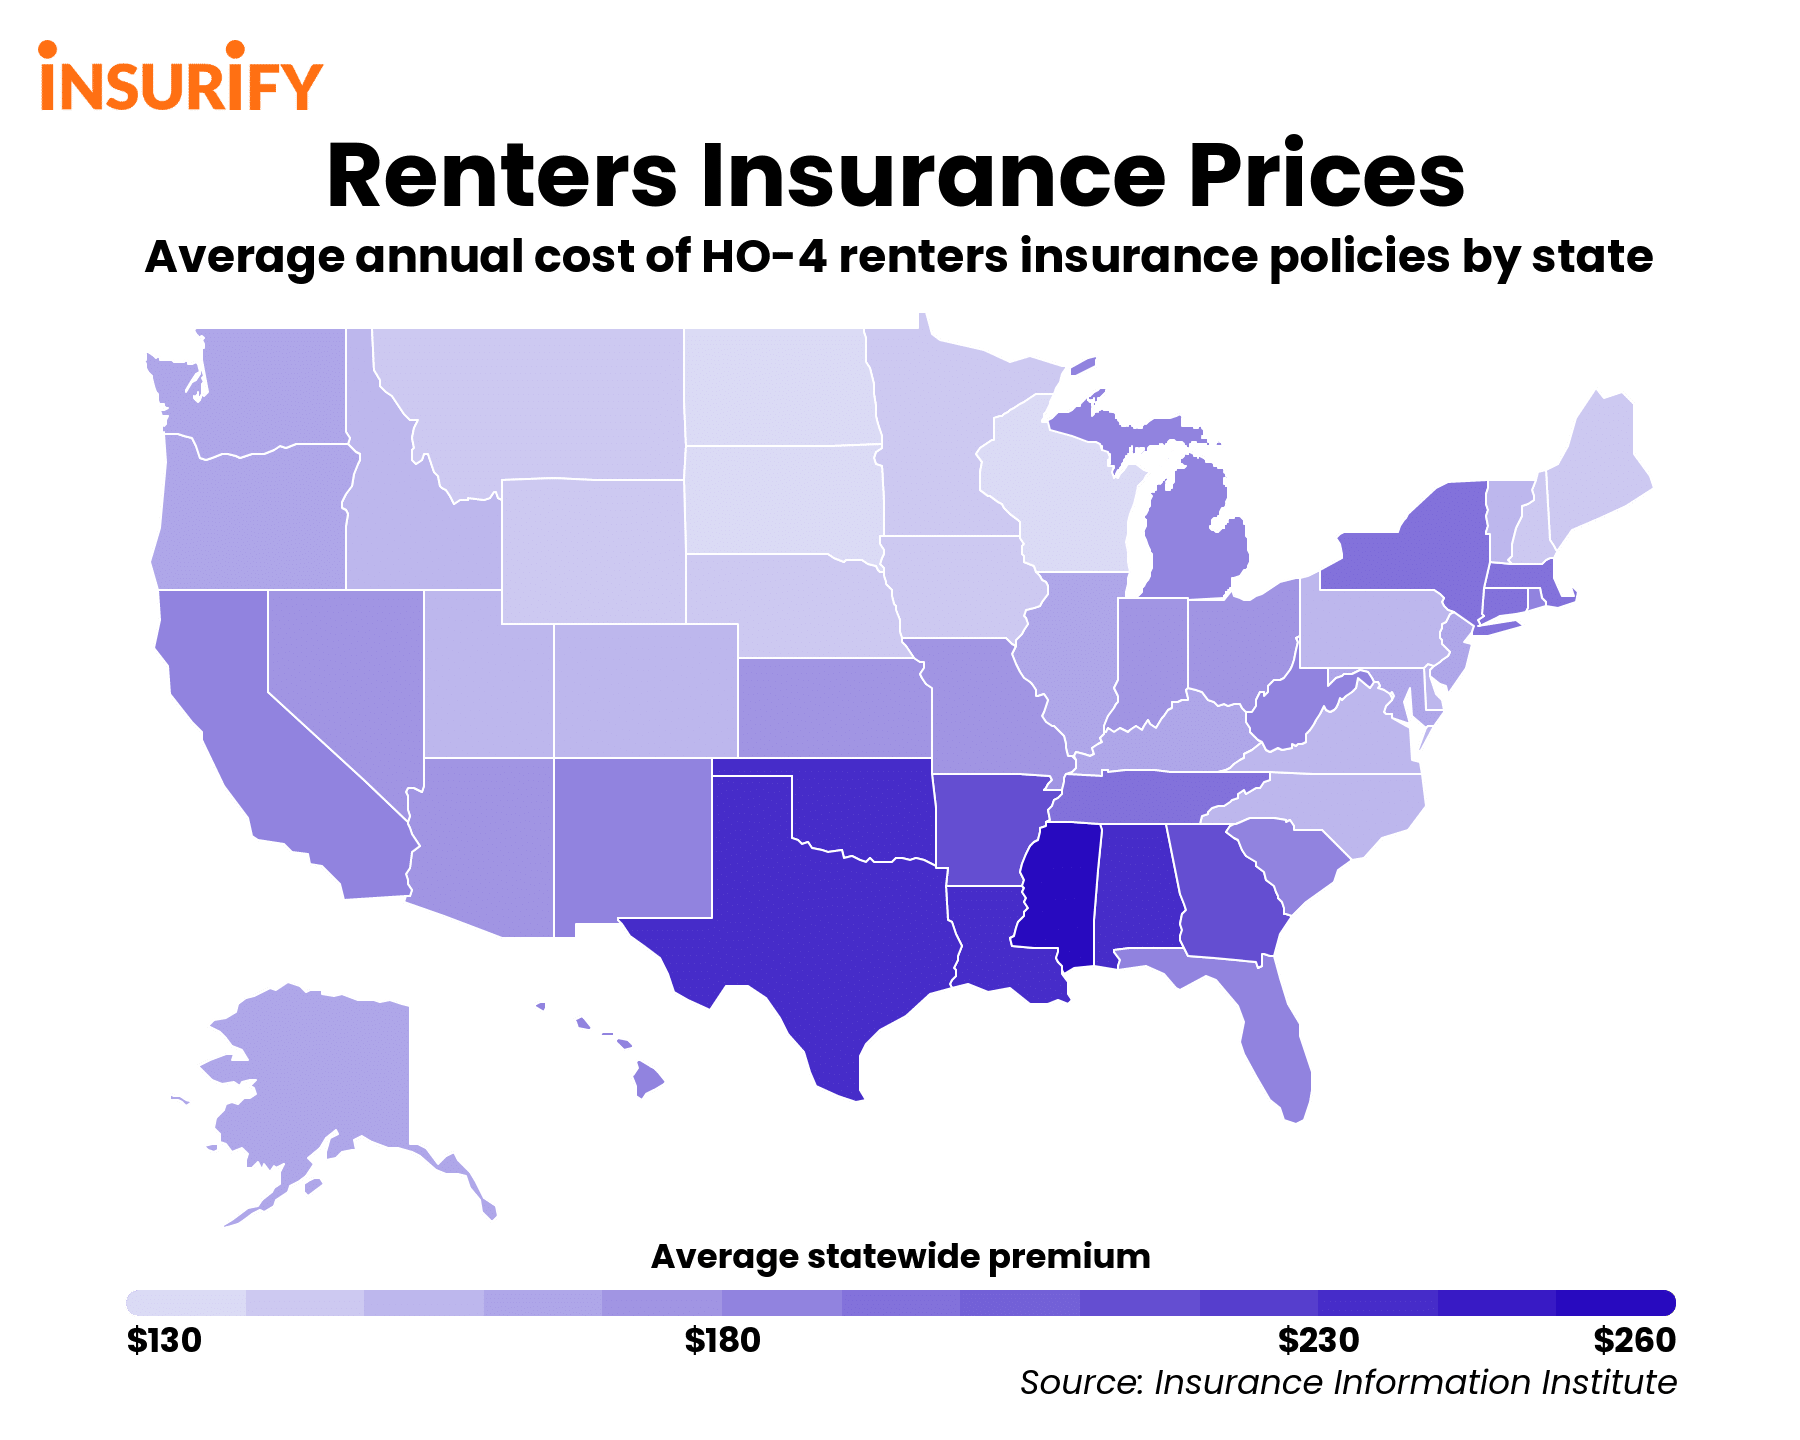 Heat map of average annual renters insurance premiums by state